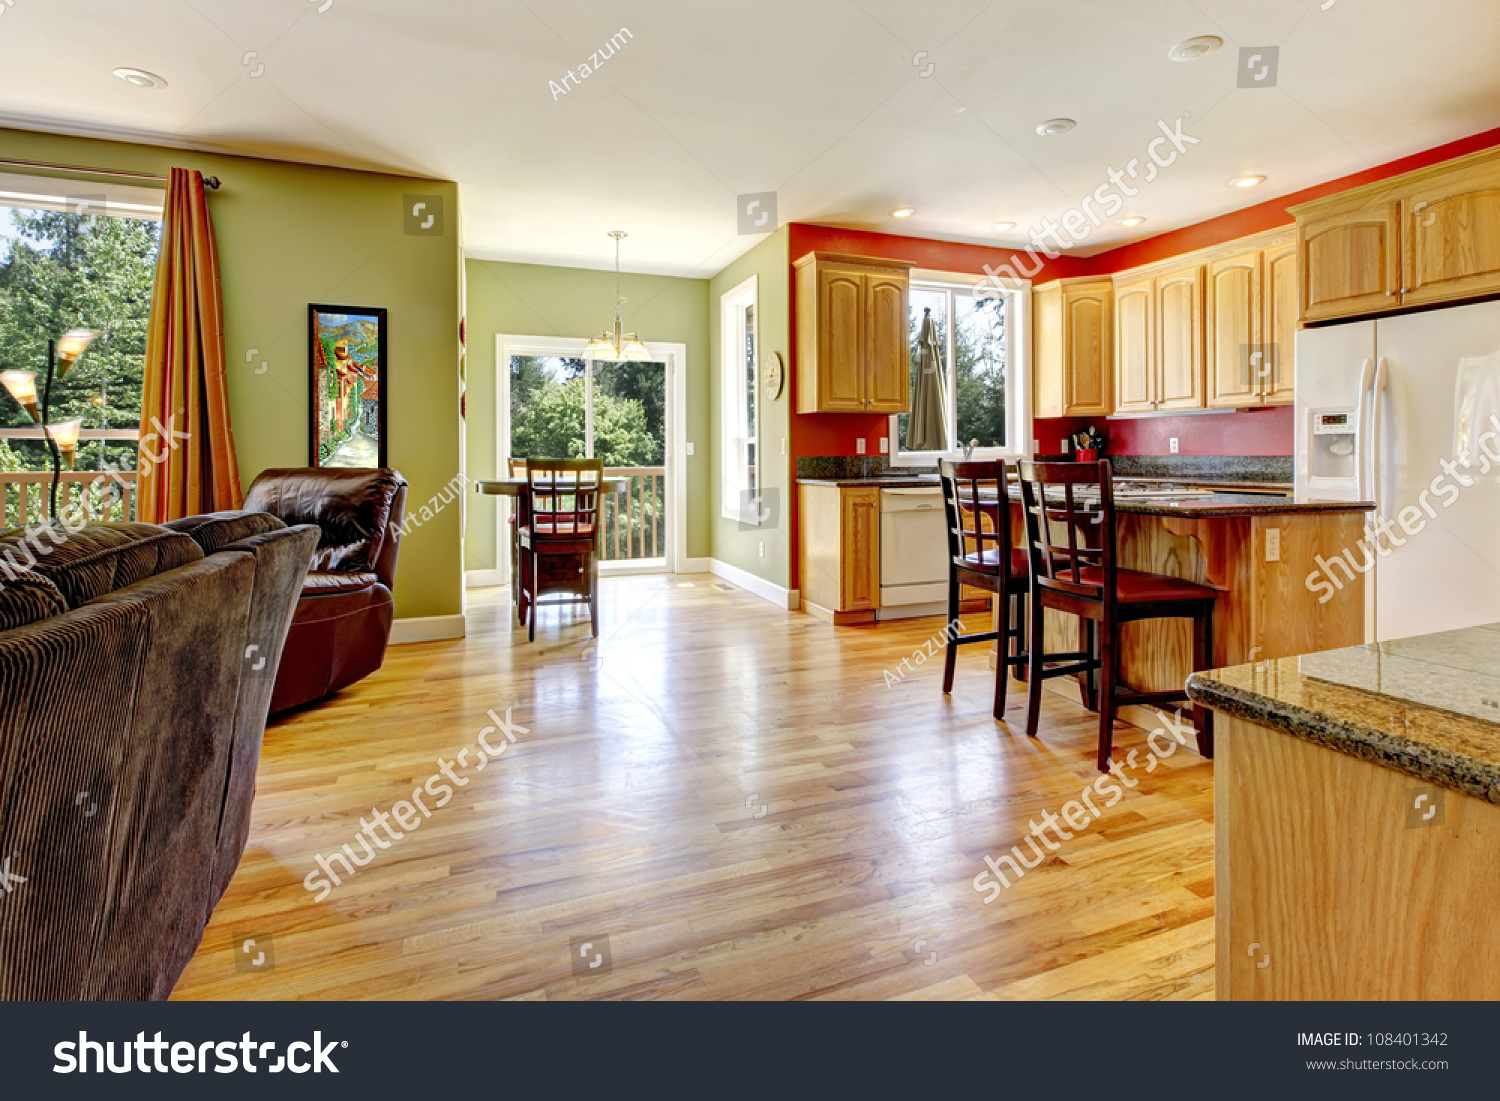 Kitchen Yellow Wood Floor Green Wall Stock Photo 108401342